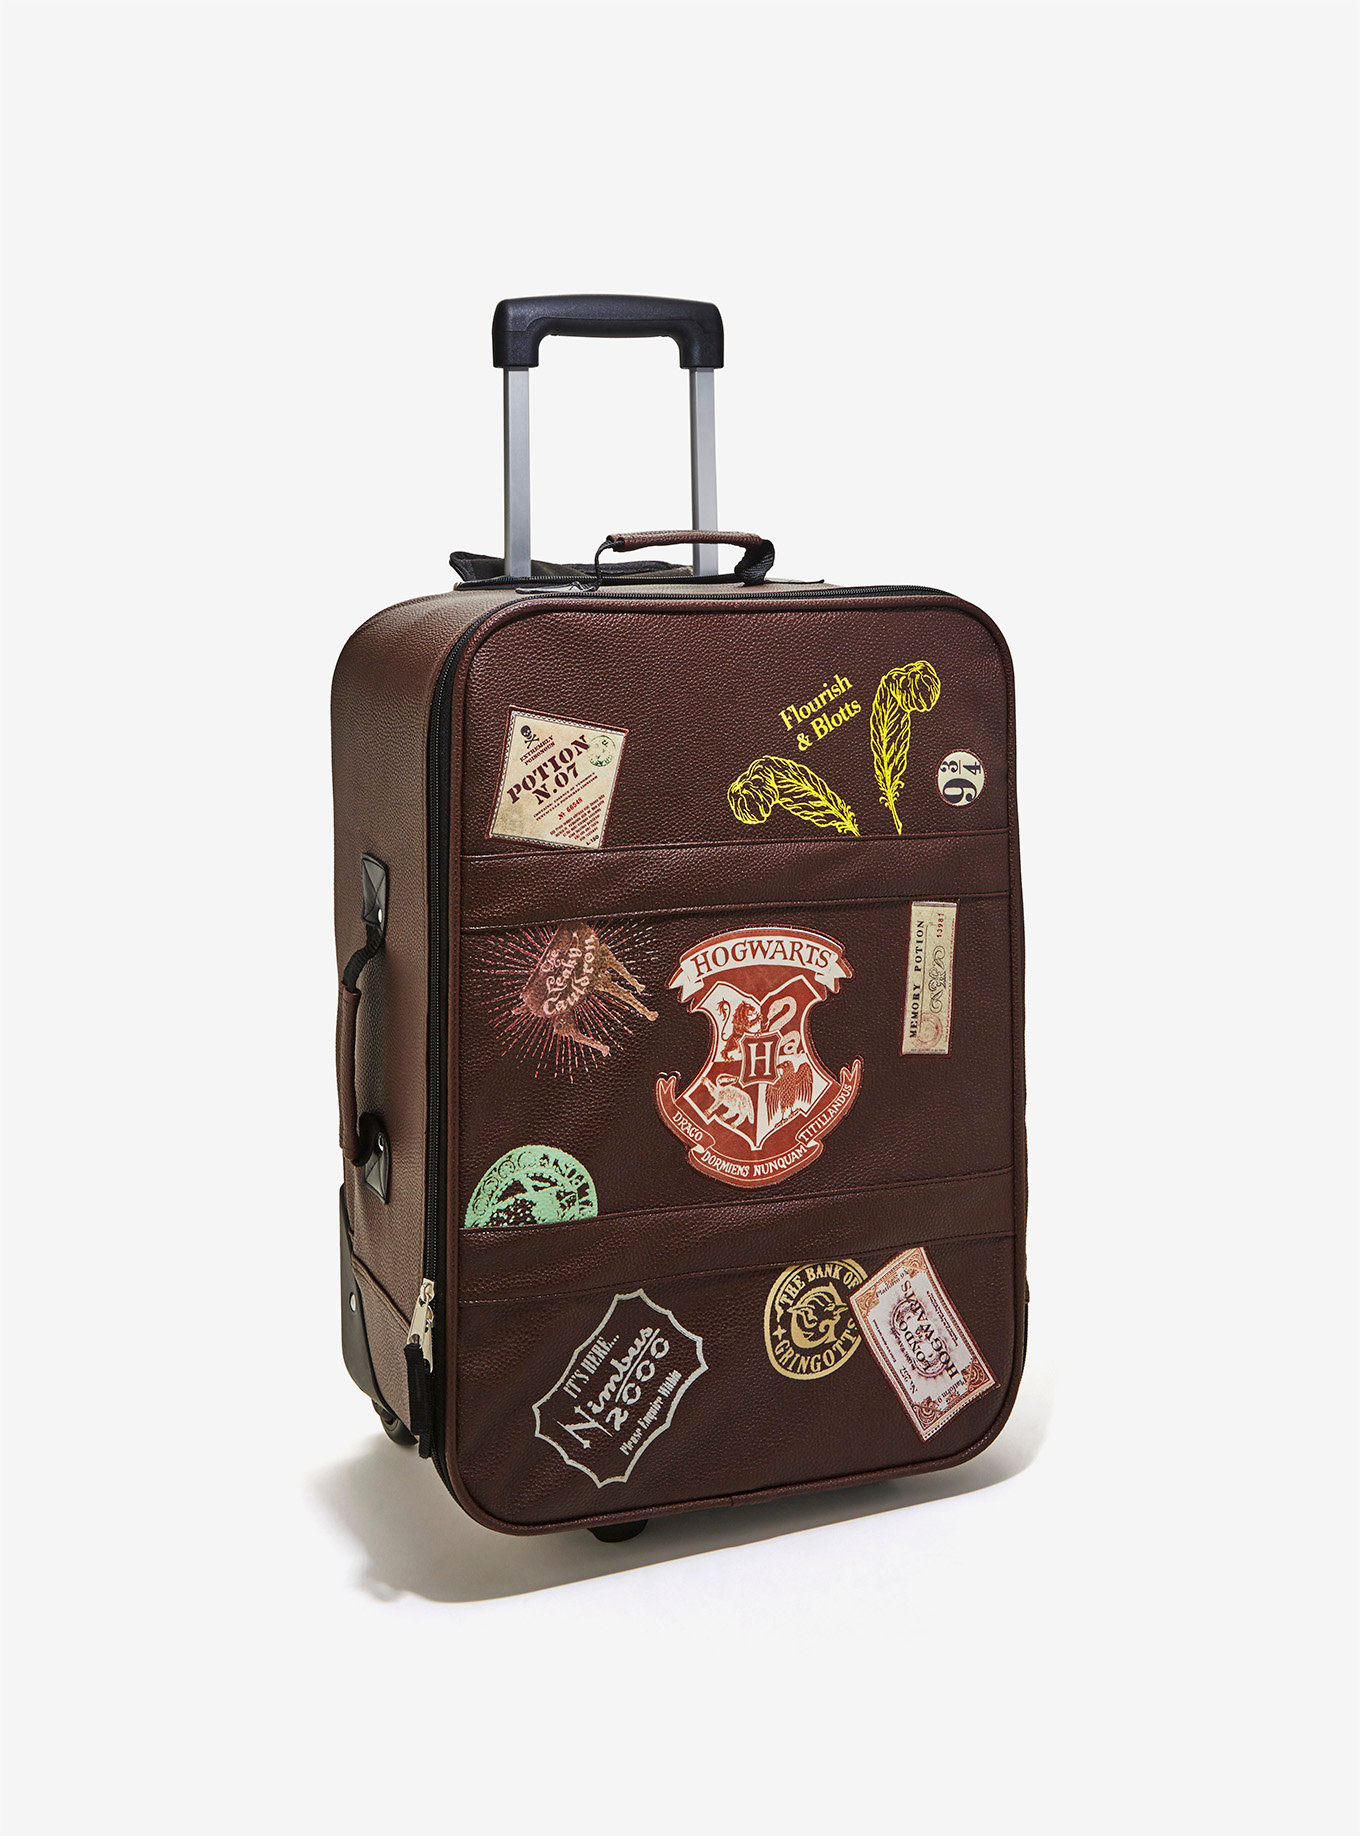 harry-potter-luggage.jpg